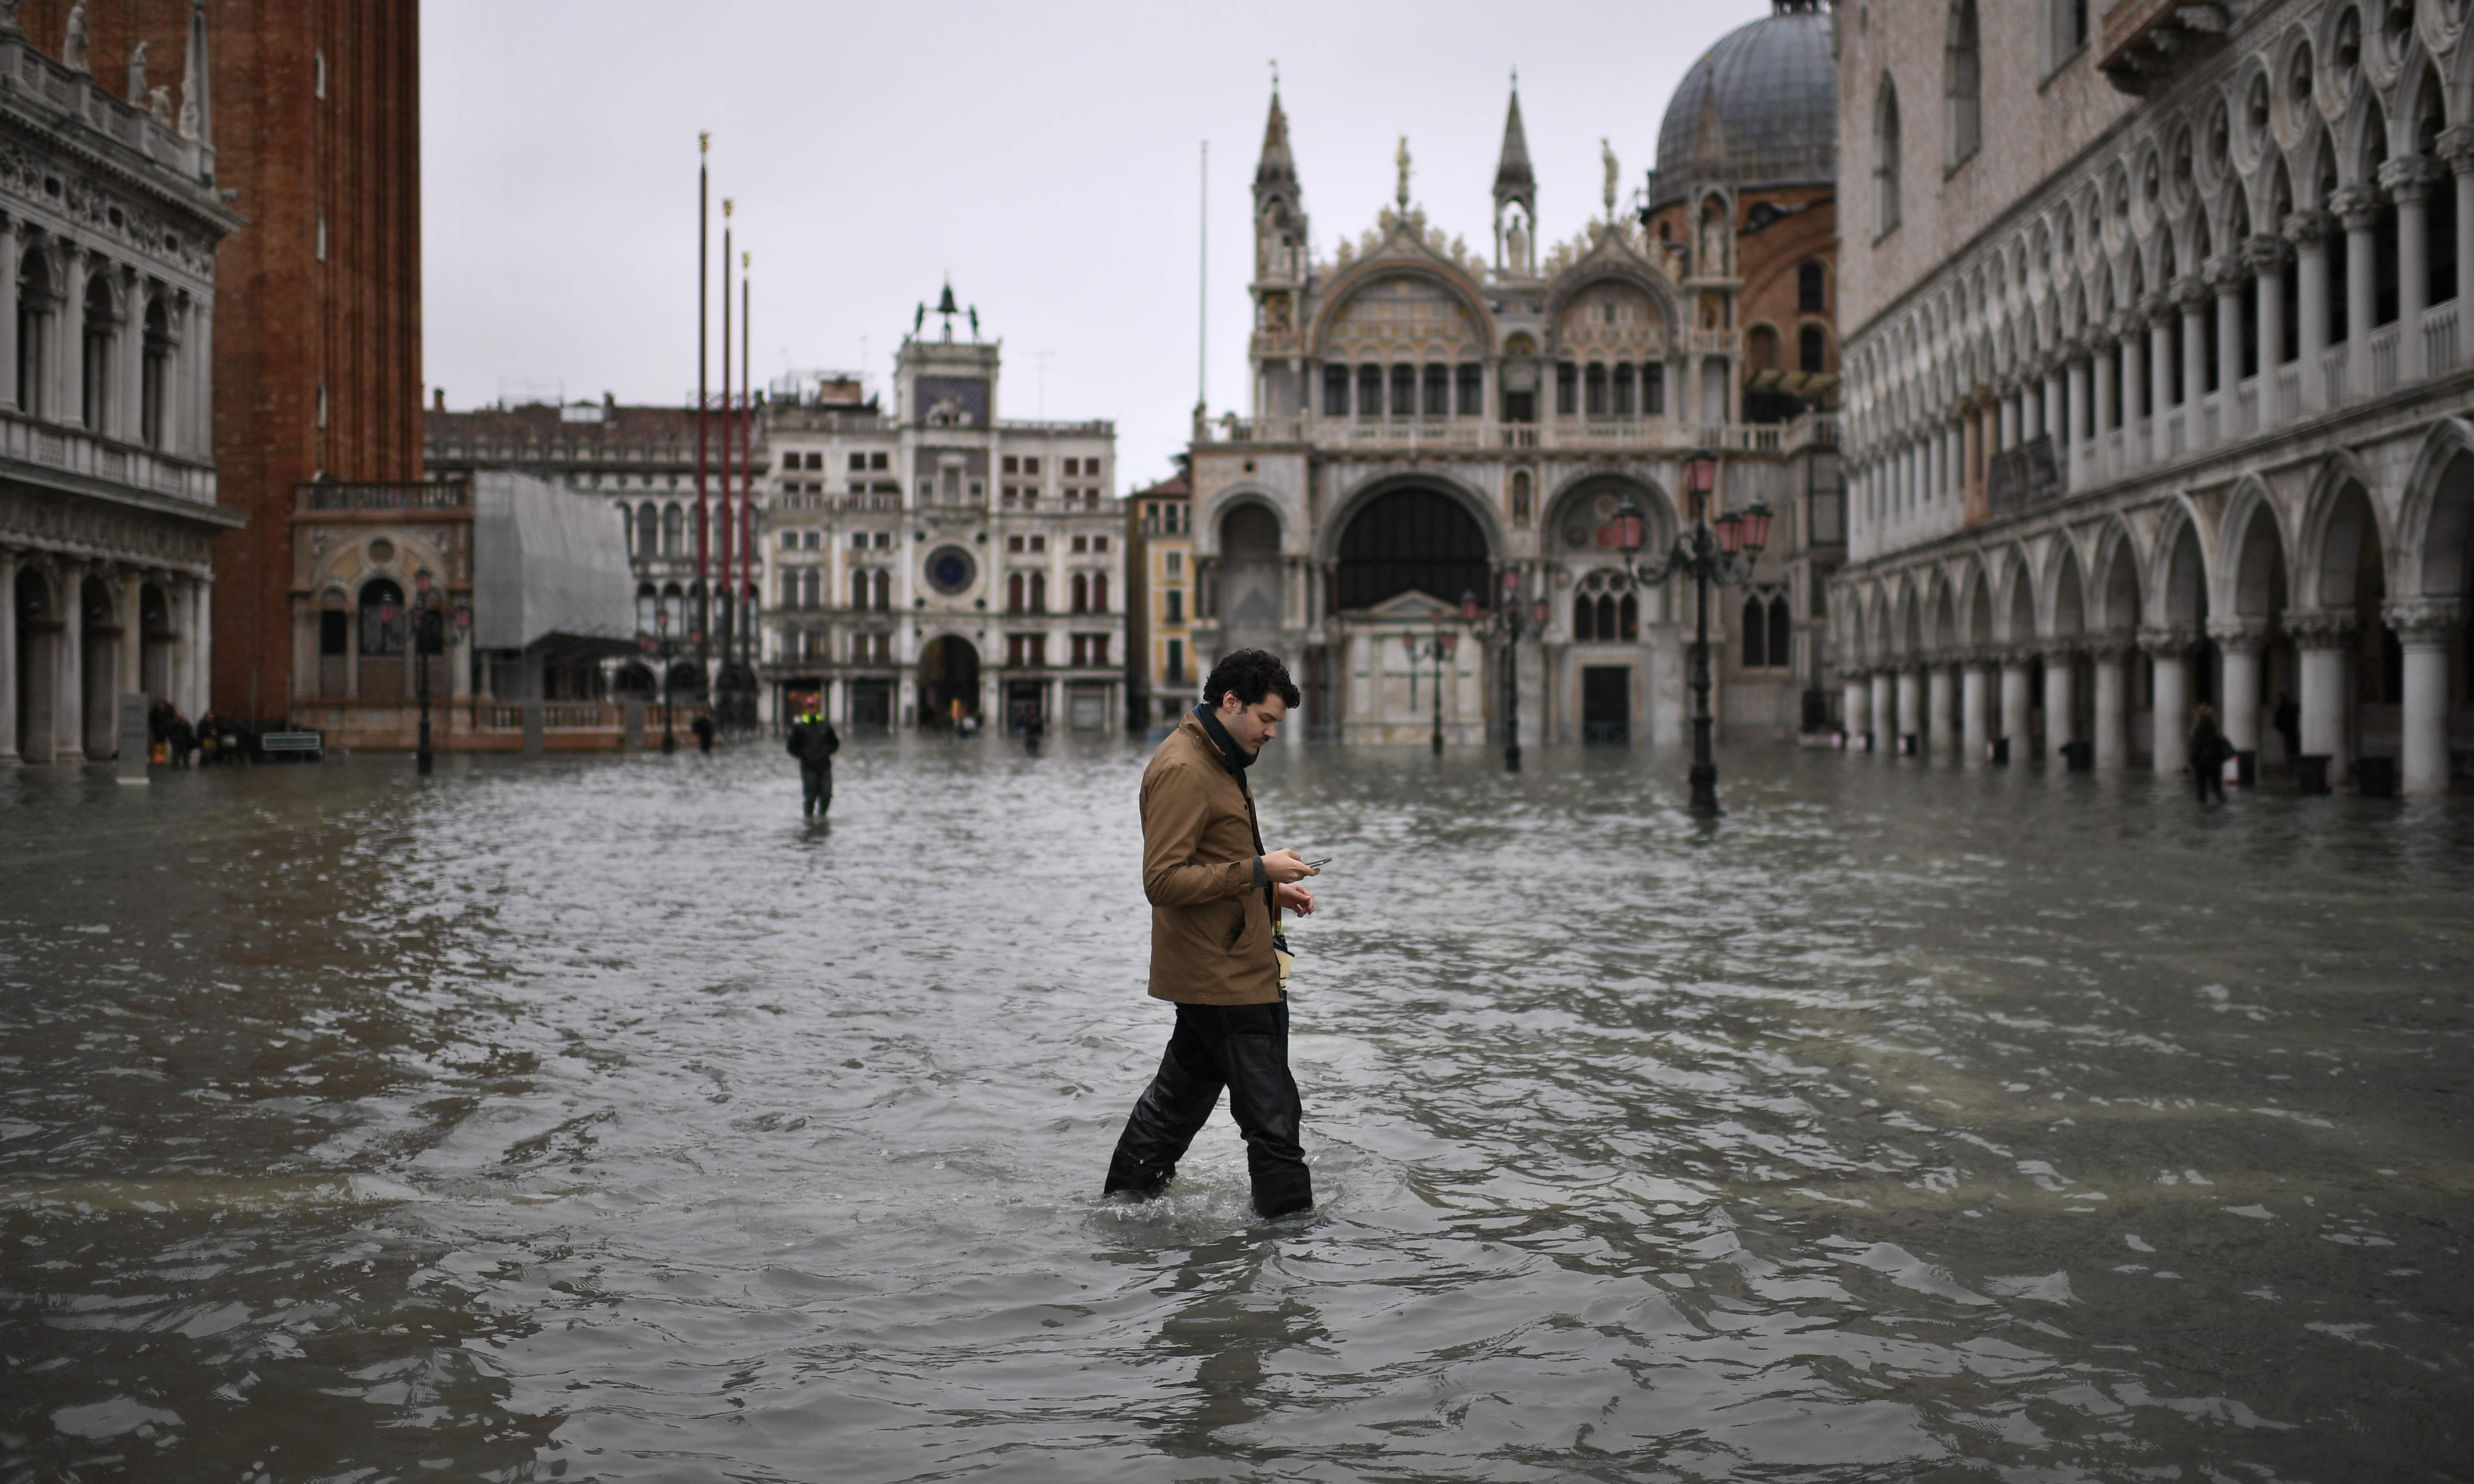 Deep trouble: can Venice hold back the tide?